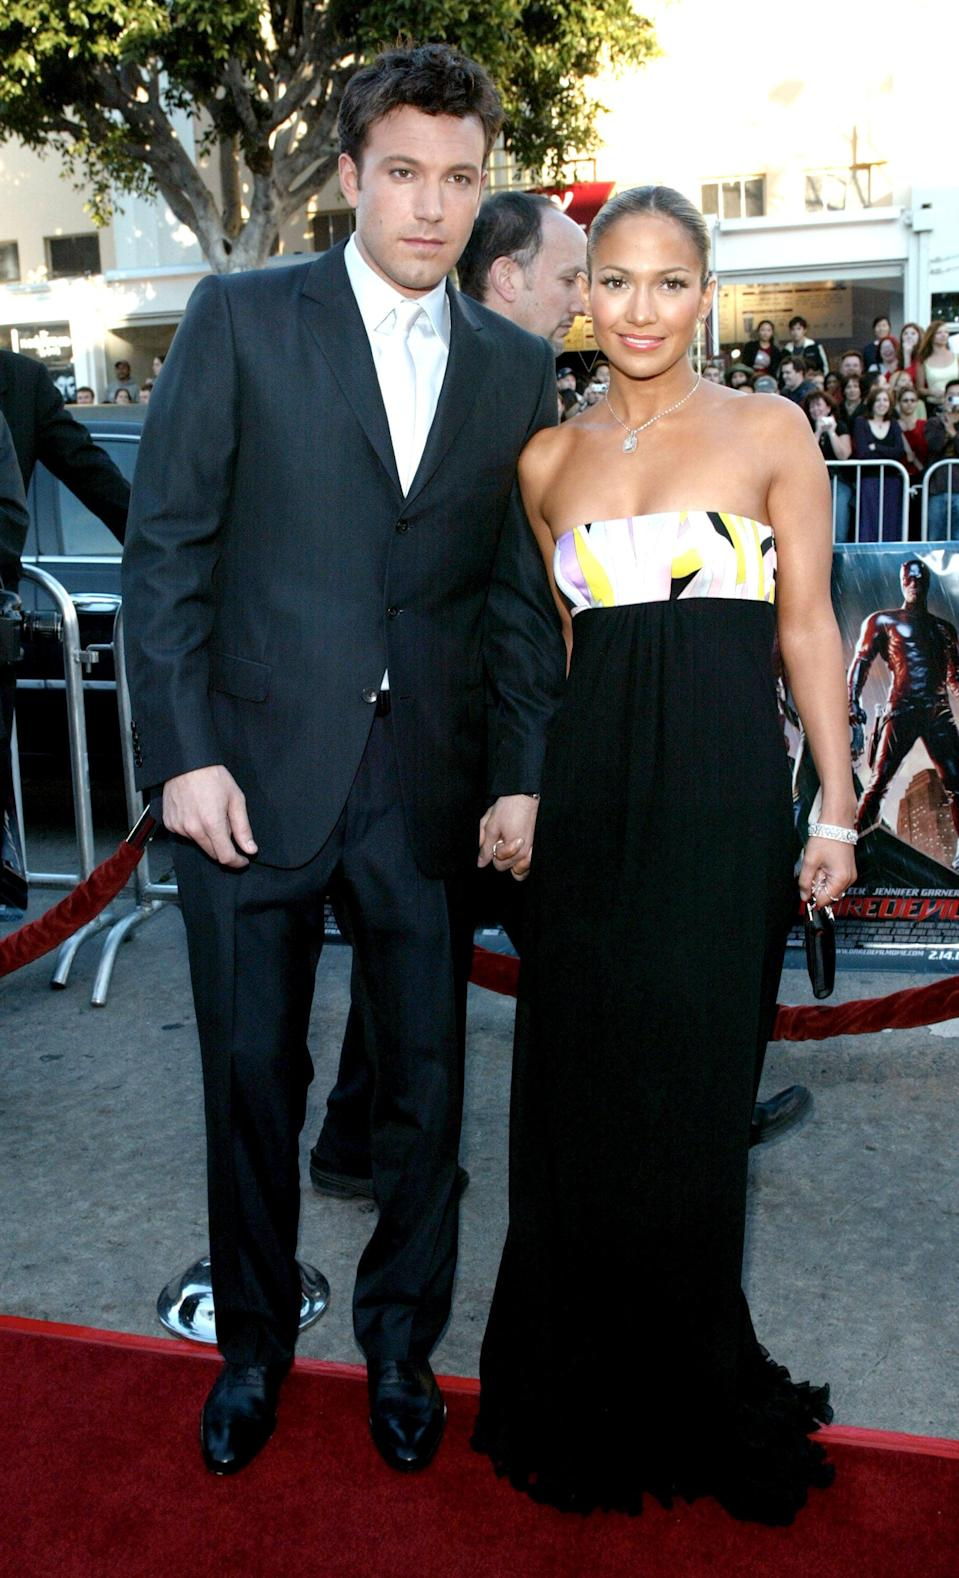 <p>Jennifer was glowing in this Pucci gown at the <b>Daredevil</b> premiere in 2003, while Ben looked polished in a suit. </p>